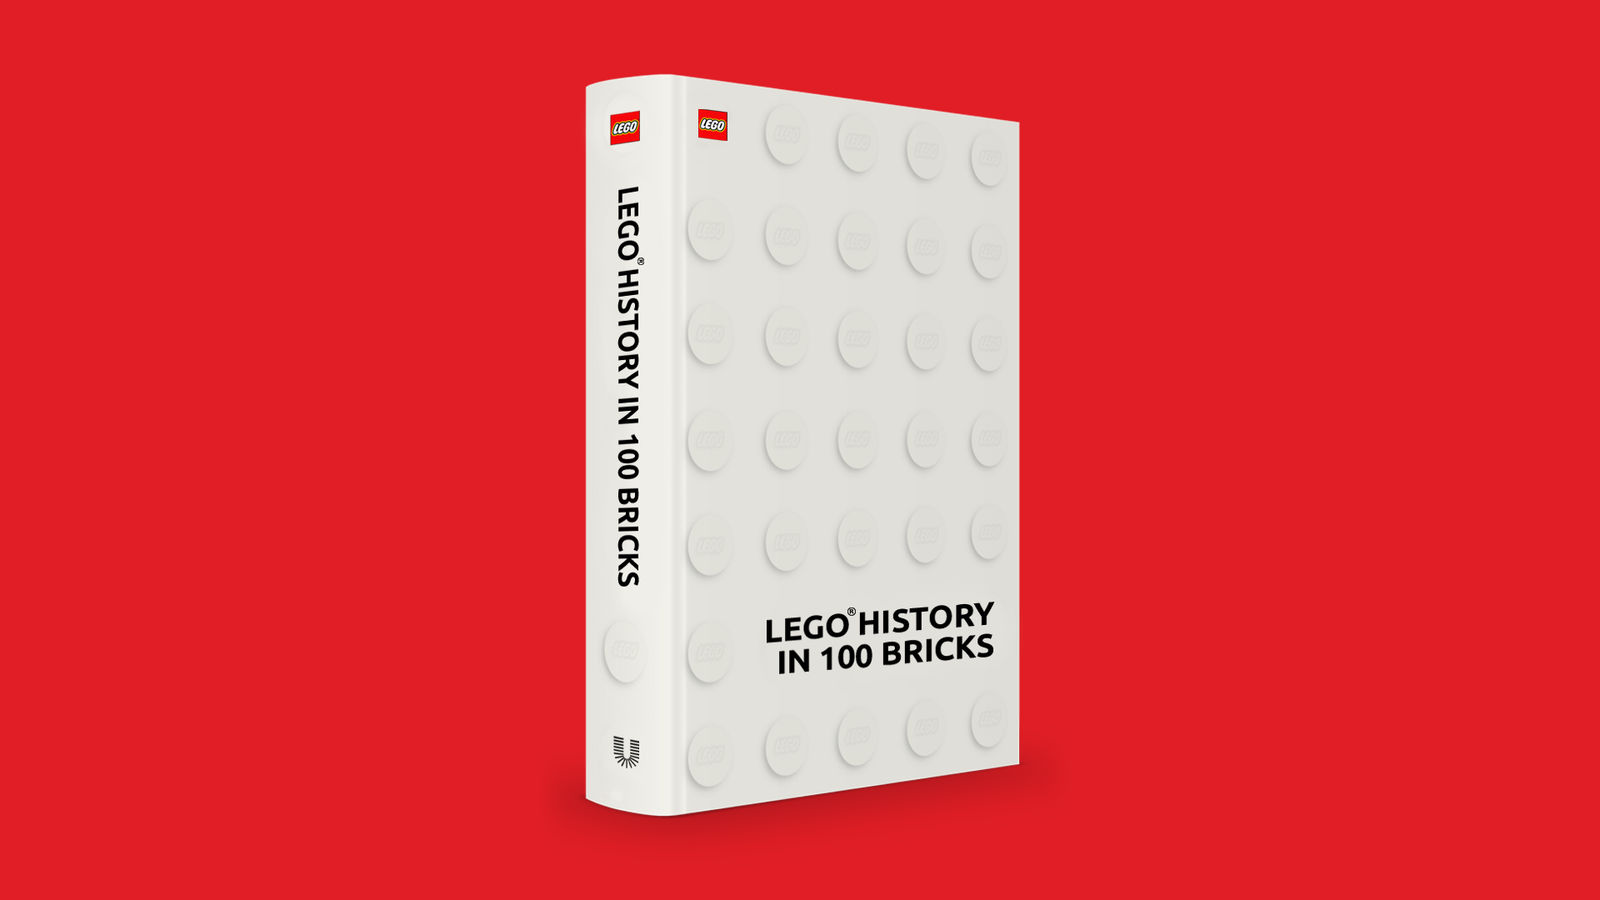 History book lego